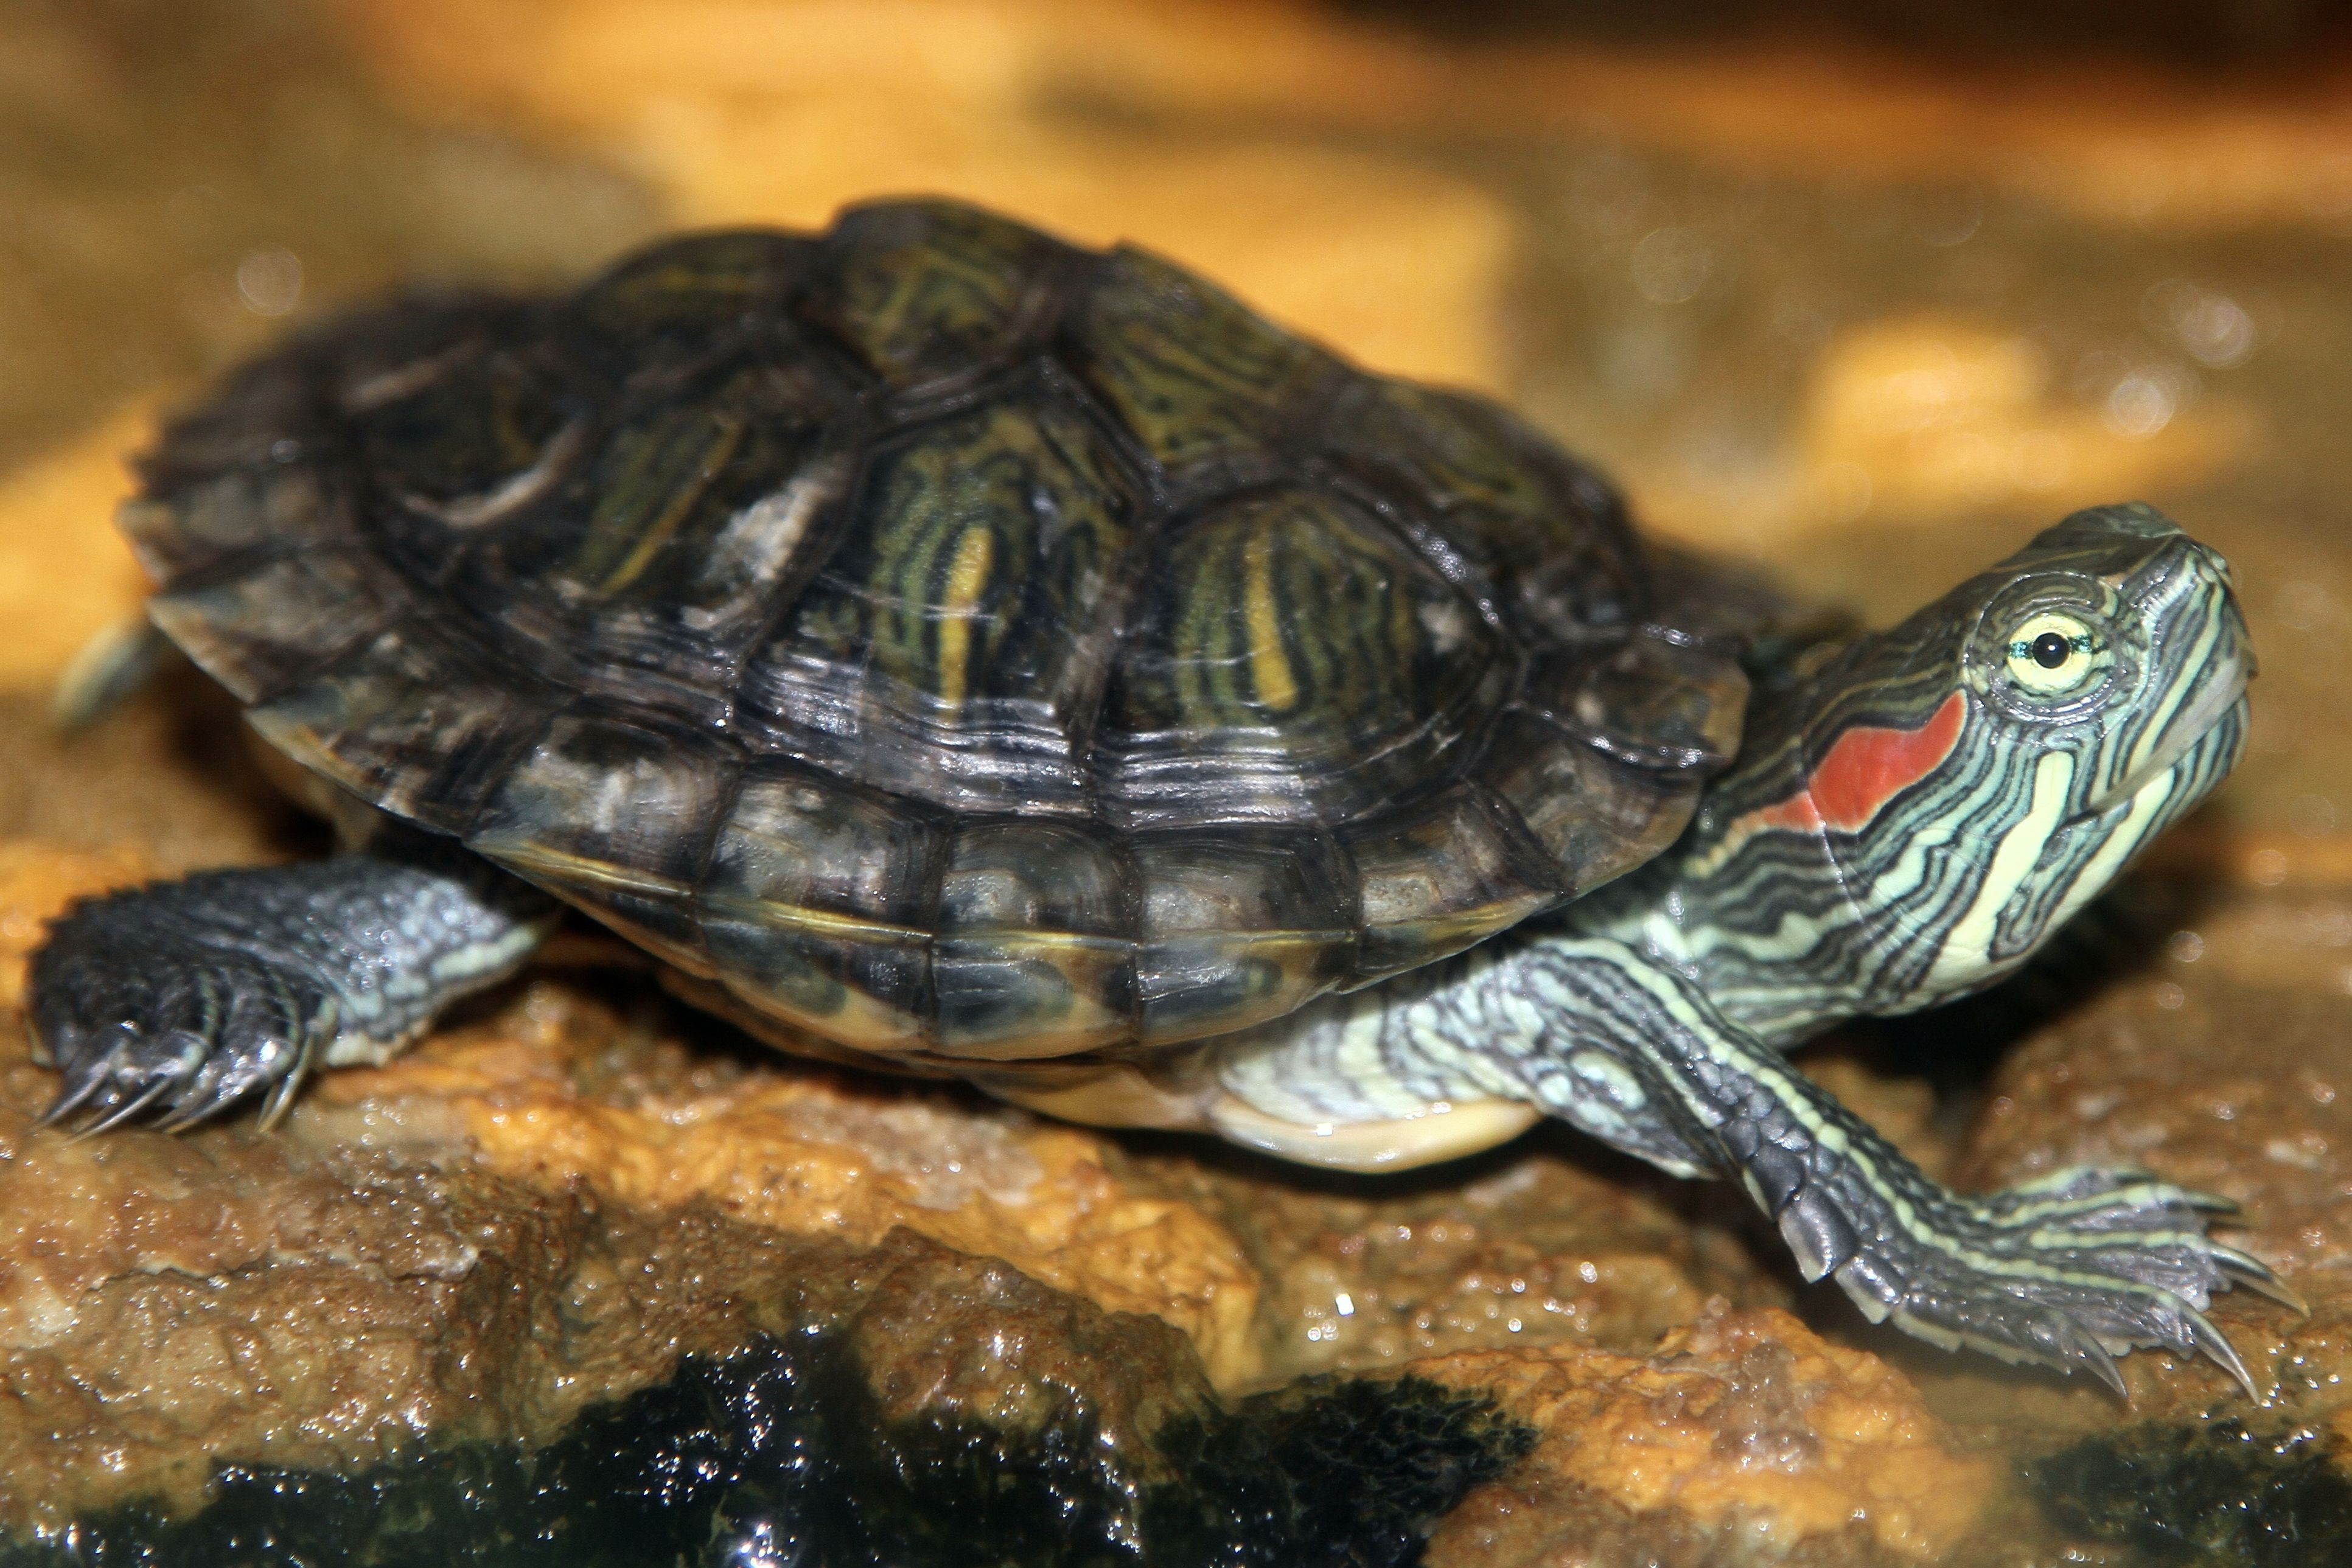 Chapter 3 was all about the turtle. The turtle was a symbol for ...